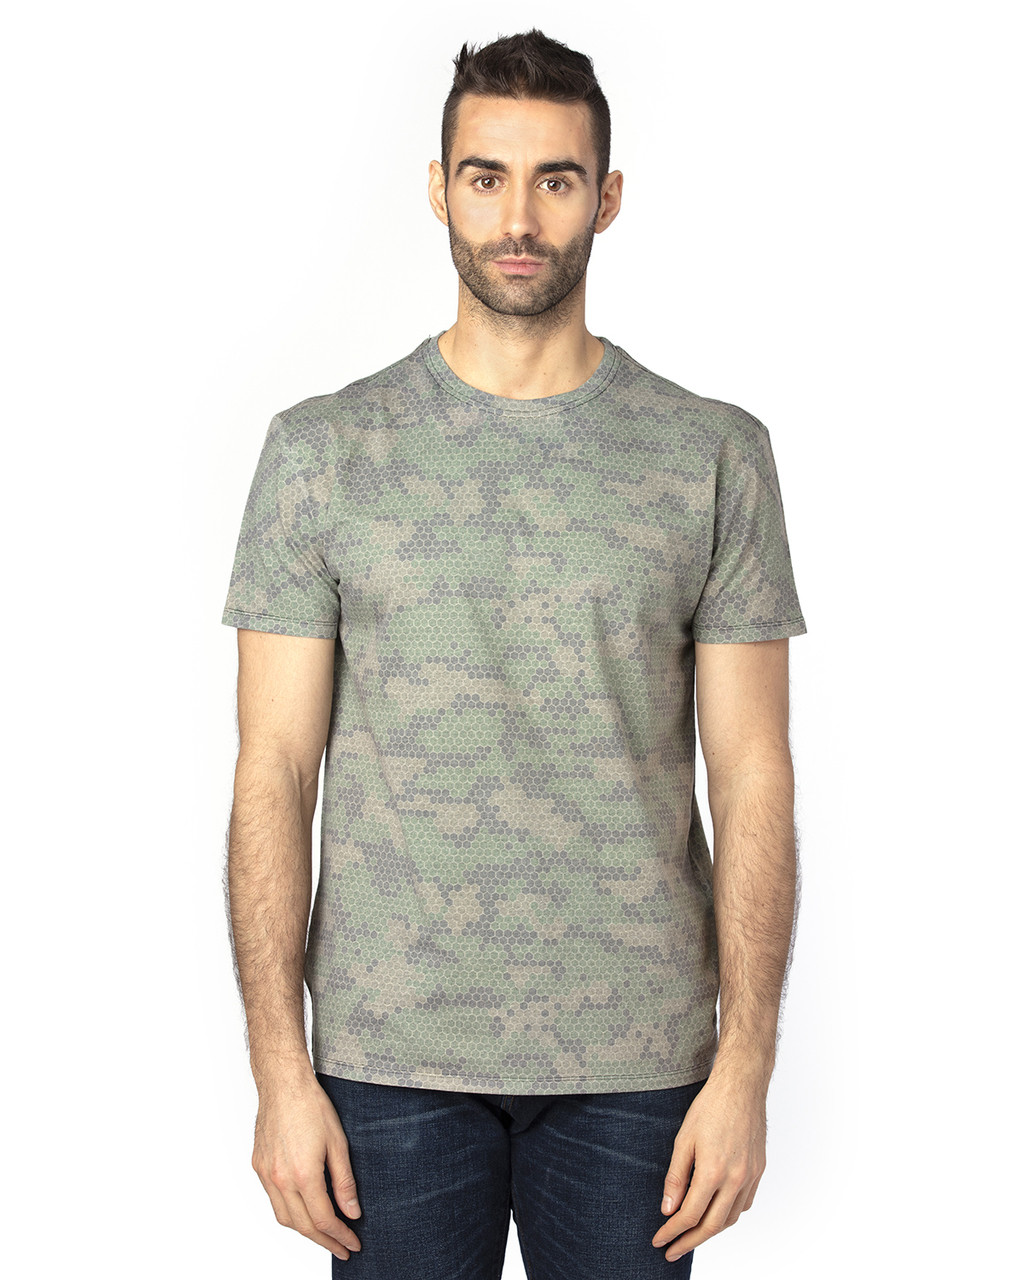 Green Hex Camo - 100A Threadfast Unisex Ultimate Short-Sleeve T-Shirt | BlankClothing.ca